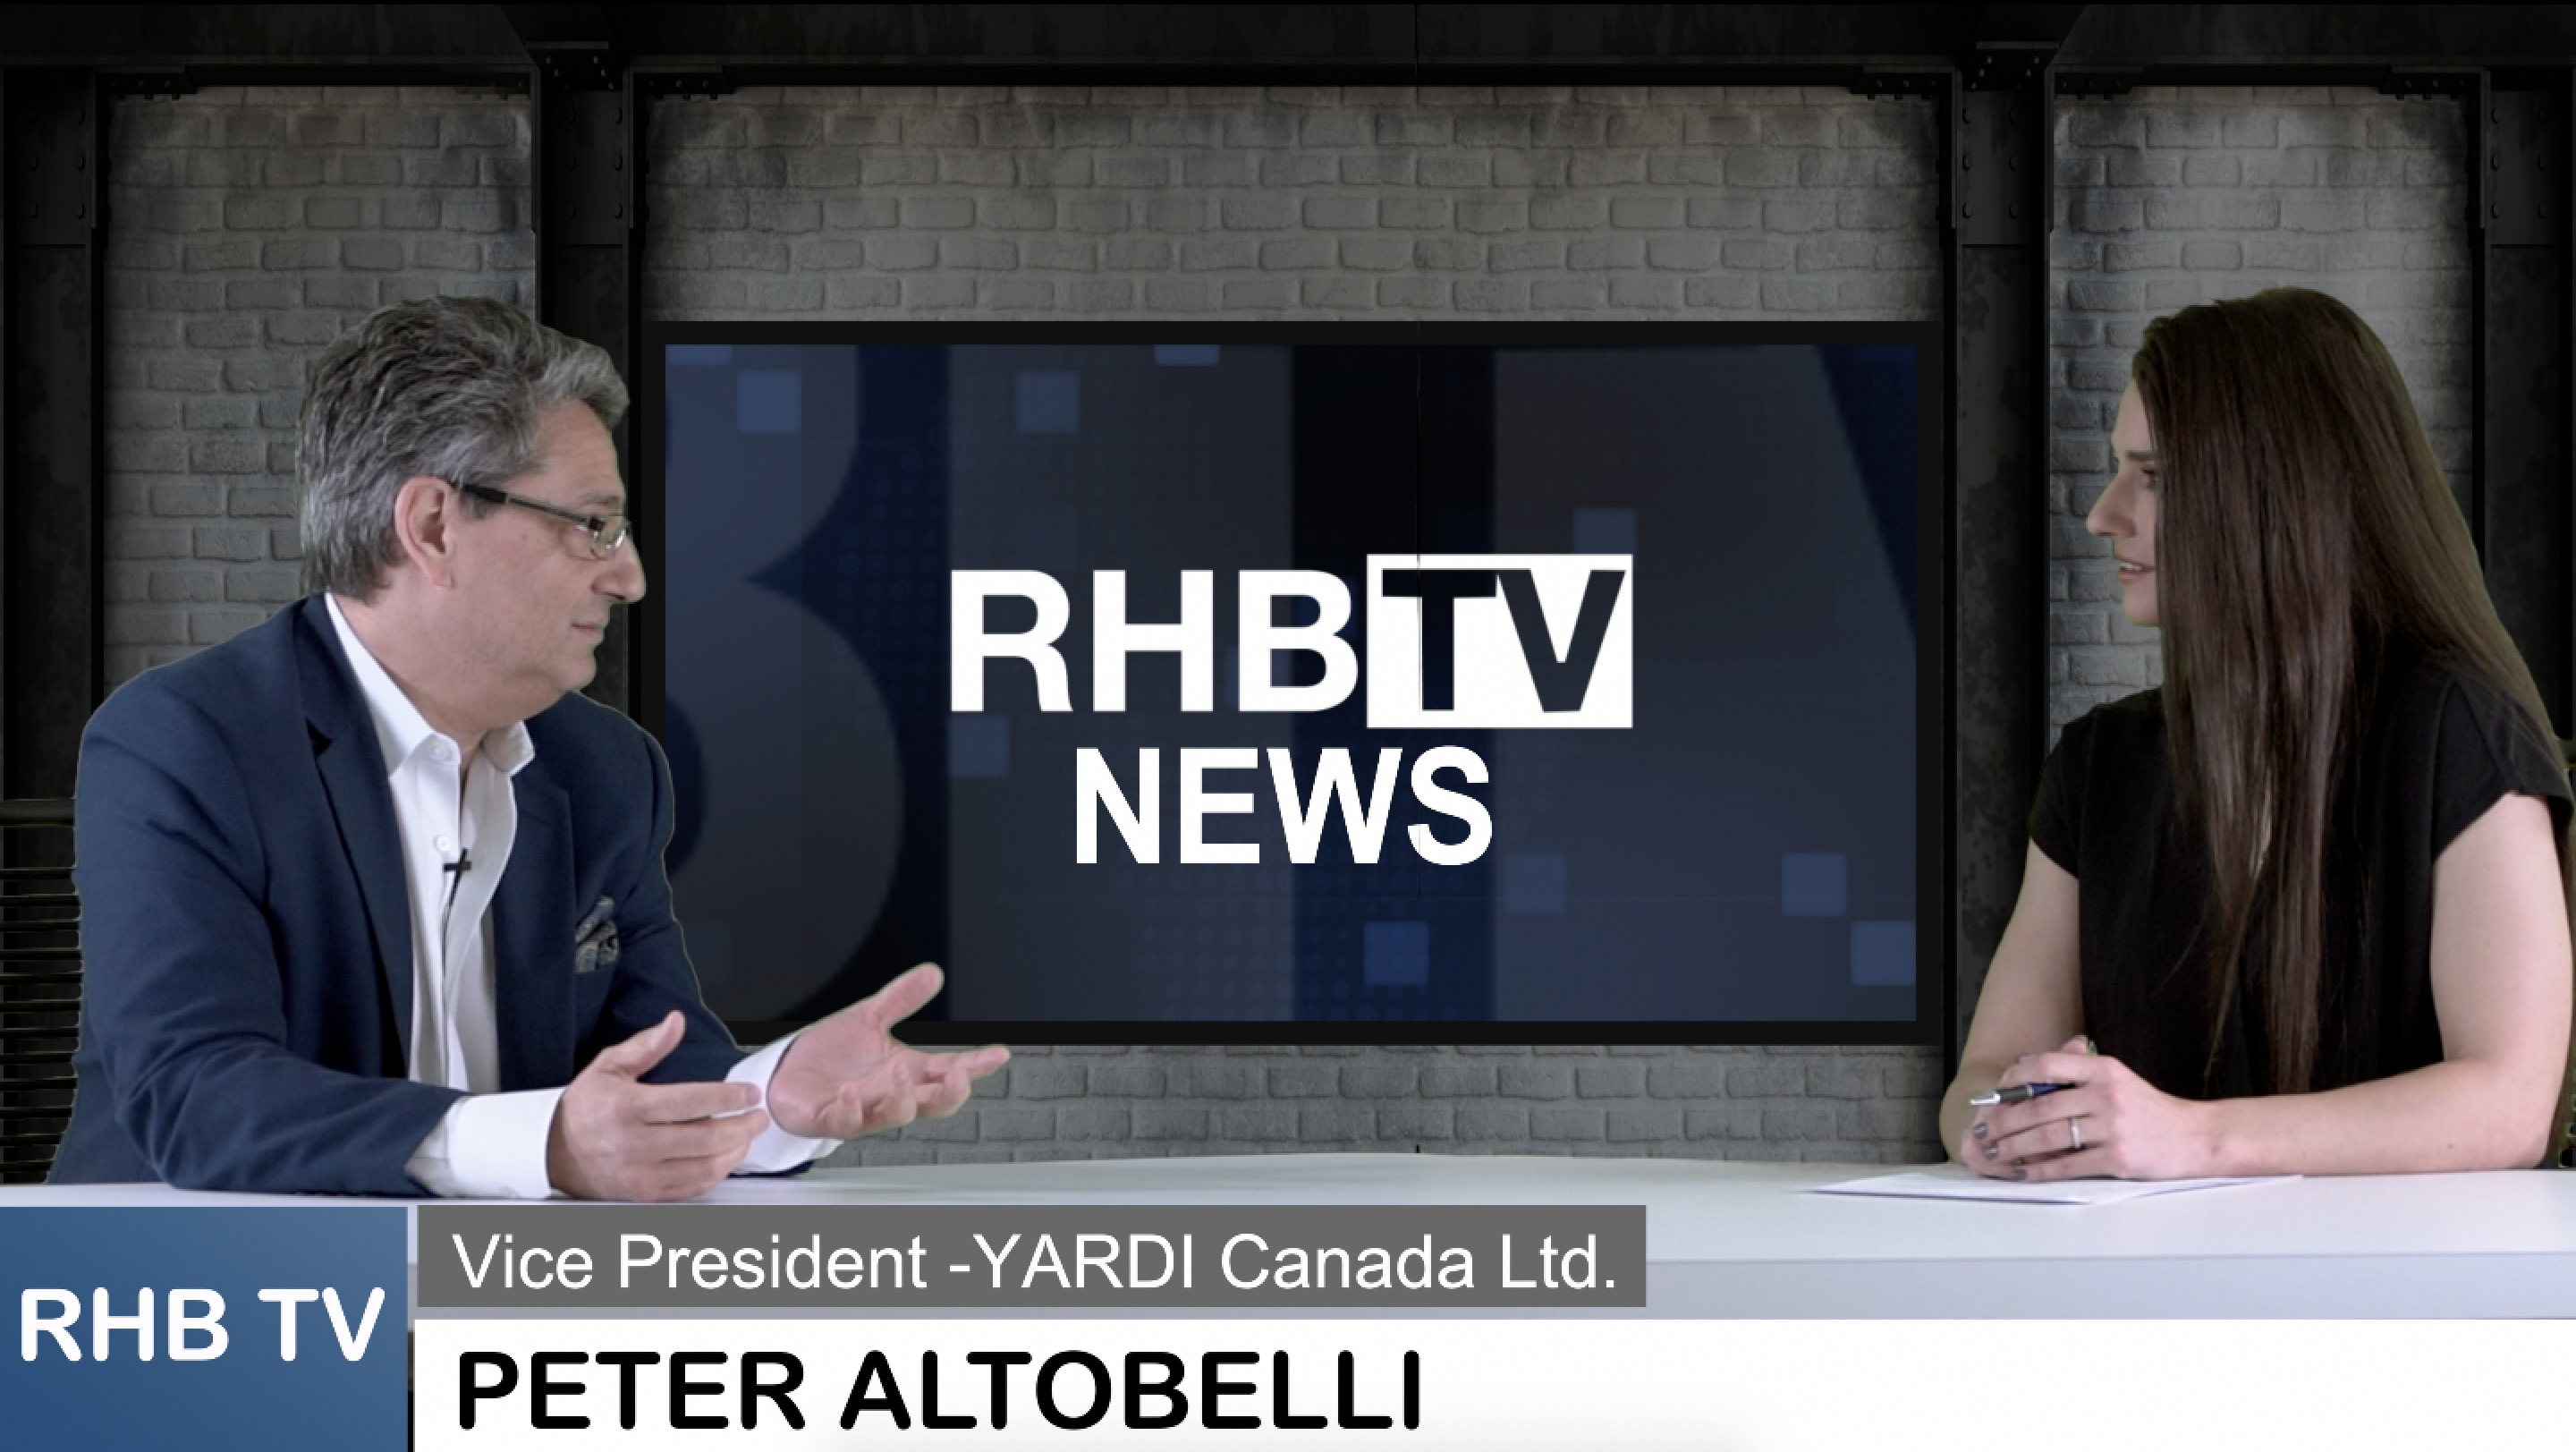 RHB TV – INTERVIEW WITH PETER ALTOBELLI OF YARDI CANADA AND PROVINCIAL REOPENING PLANS